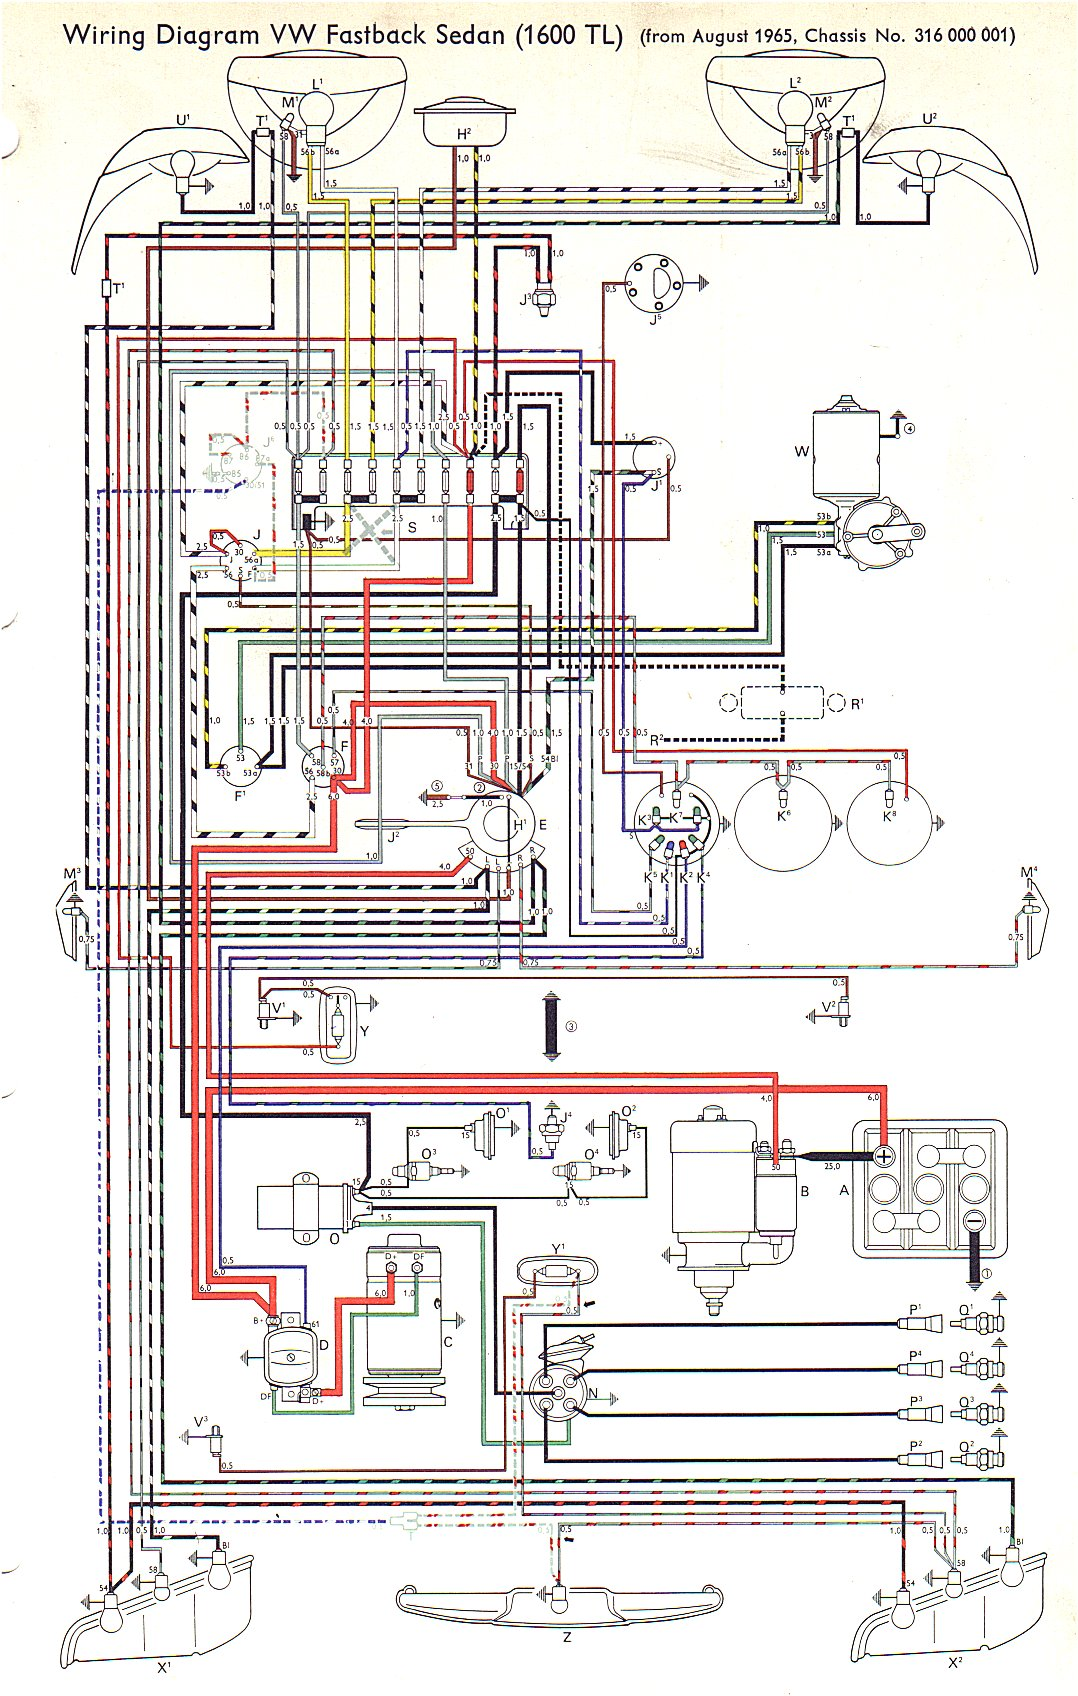 Wiring Diagram 2001 Mitsubishi Mirage Simple Guide About 2008 Jetta 2 5 Fuse Vw Type 3 Diagrams